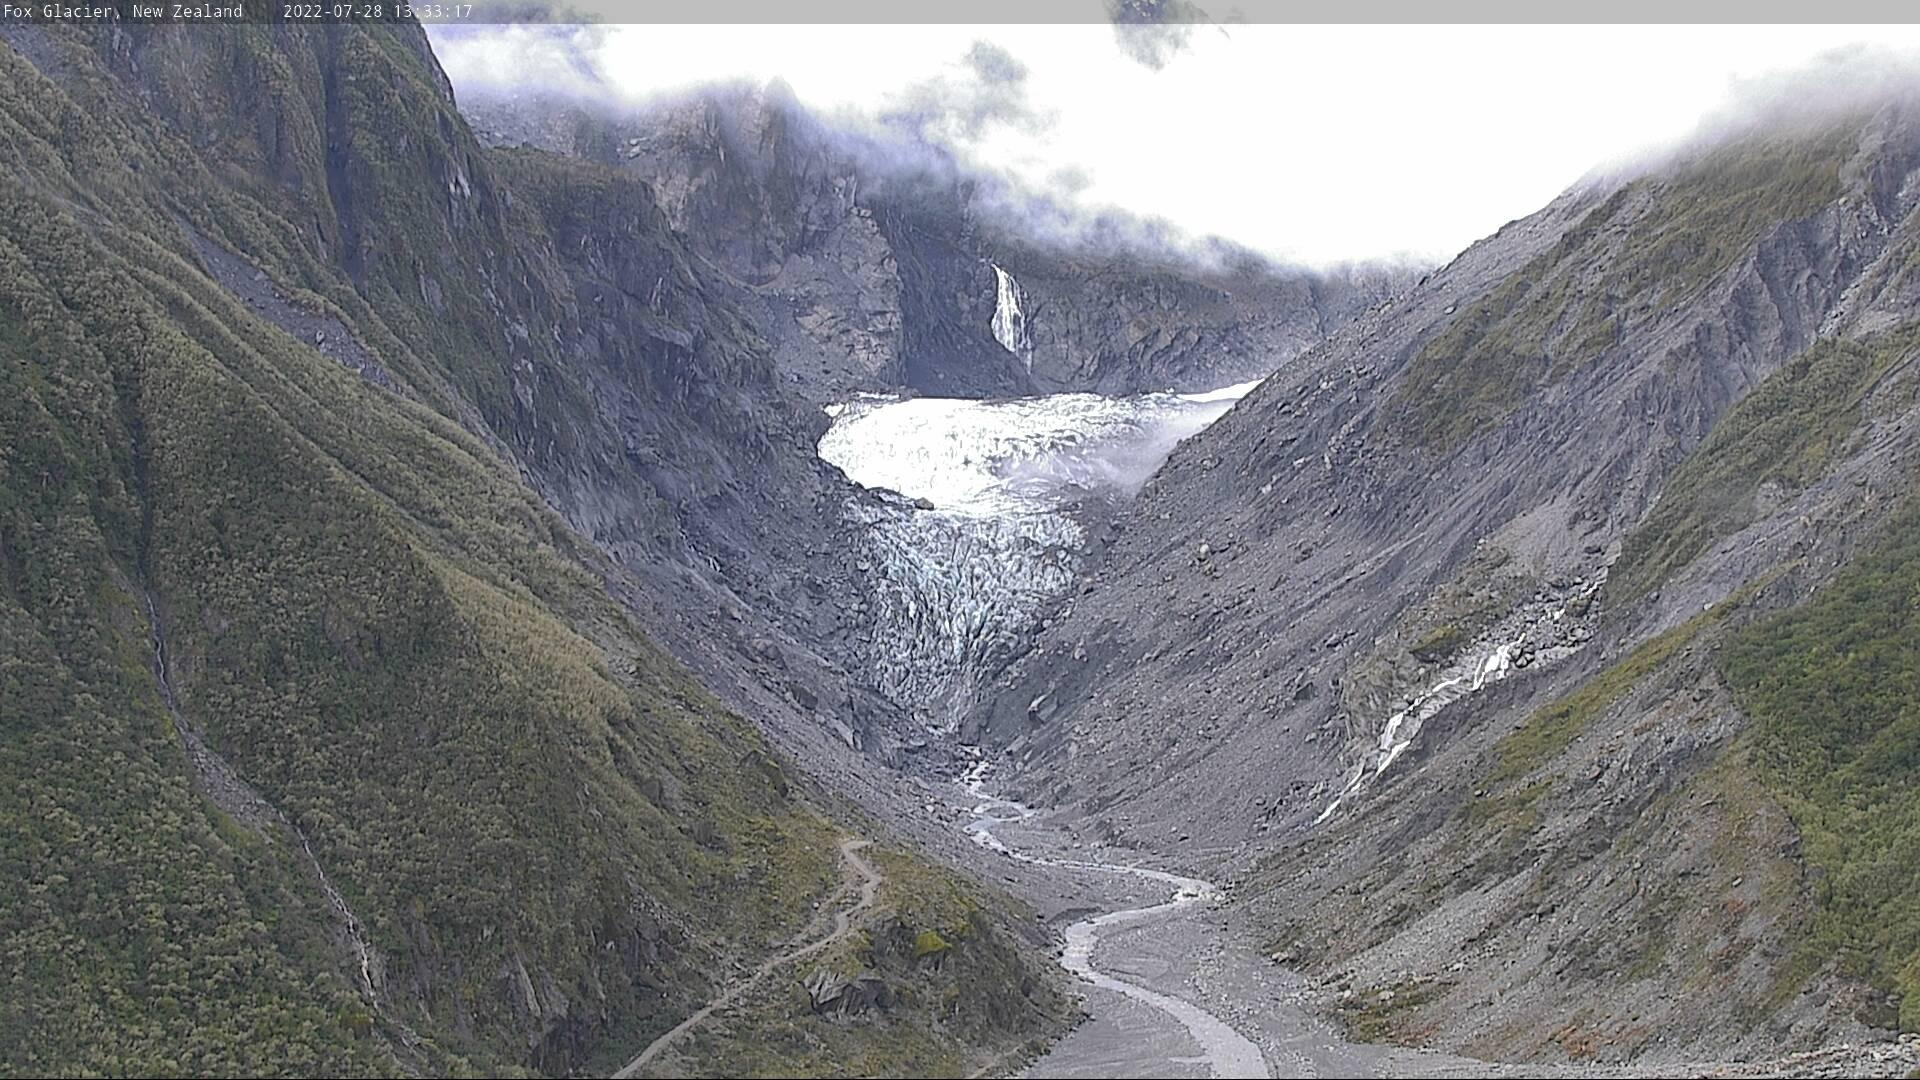 Webkamera Fox Glacier › East: Valley and Snowfields